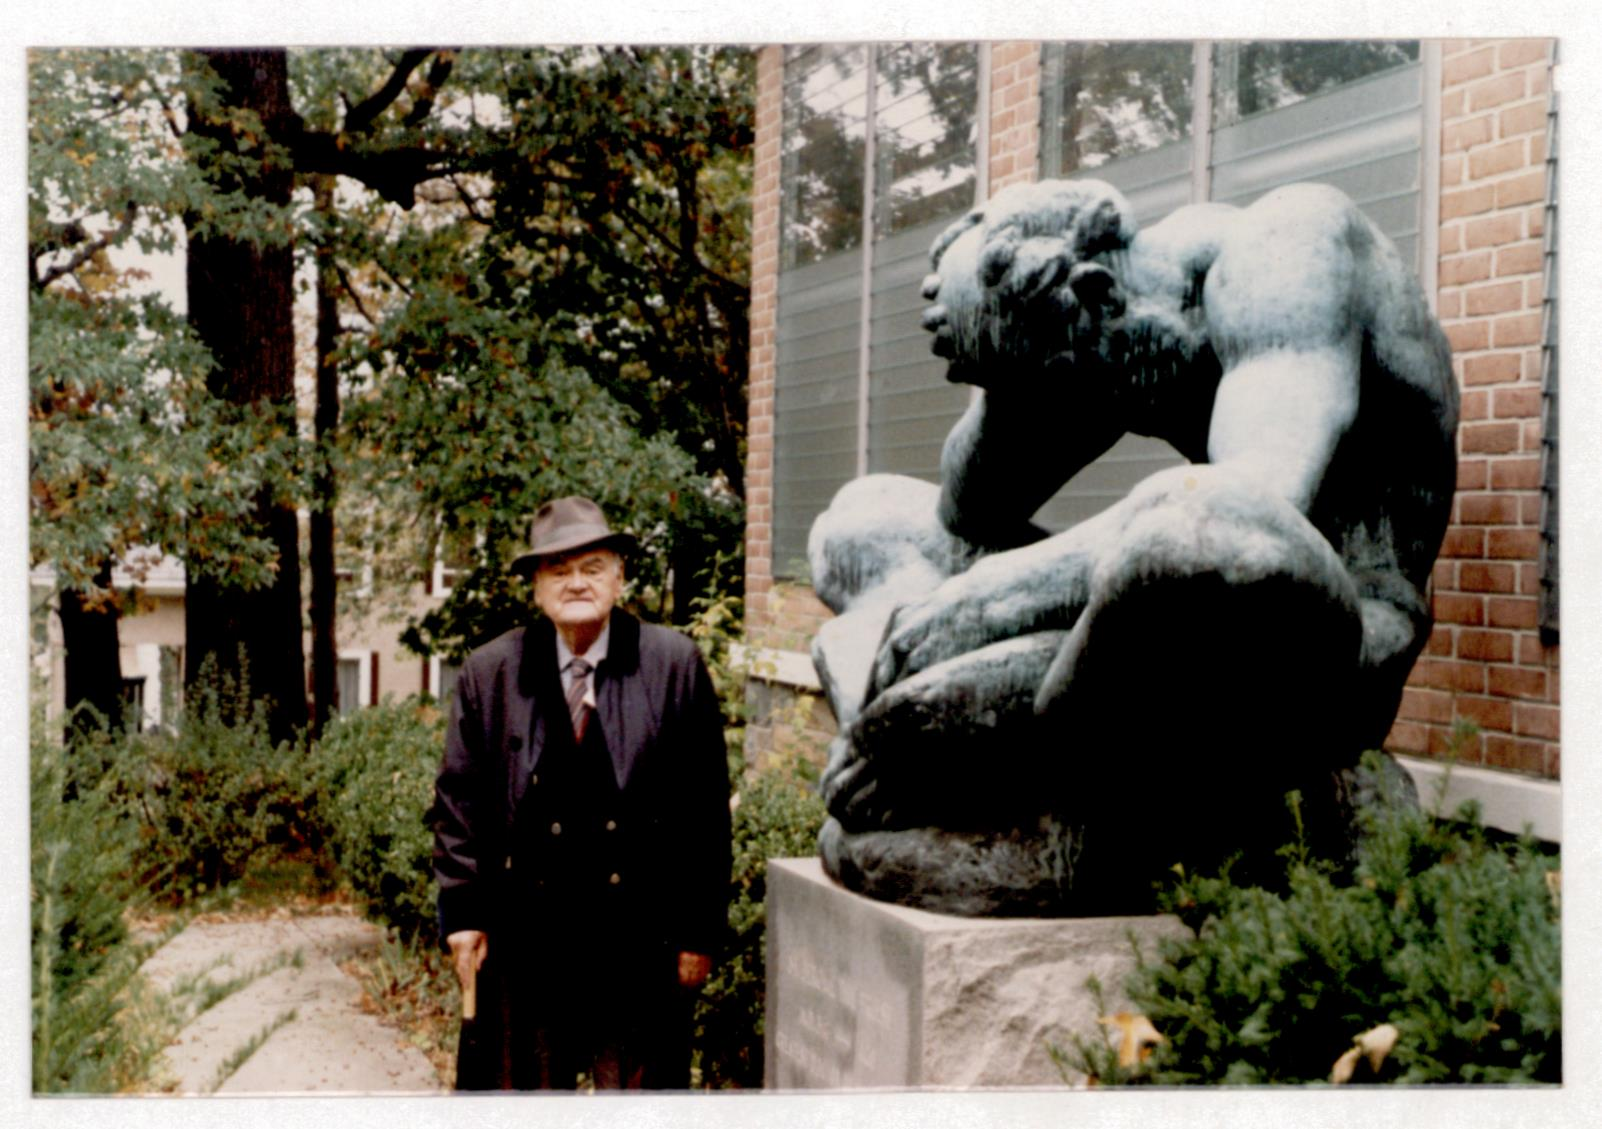 Bogdan Radica in front of the statue of Saint Jerome of Dalmatia in the 1980's in the garden of a Franciscan Monastery in Washington. The statue was made by Ivan Mestrović, also a Croatian emigrant. Photo source: HR-HDA-1769, Bogdan Radica Personal Archive Fund, box 36.